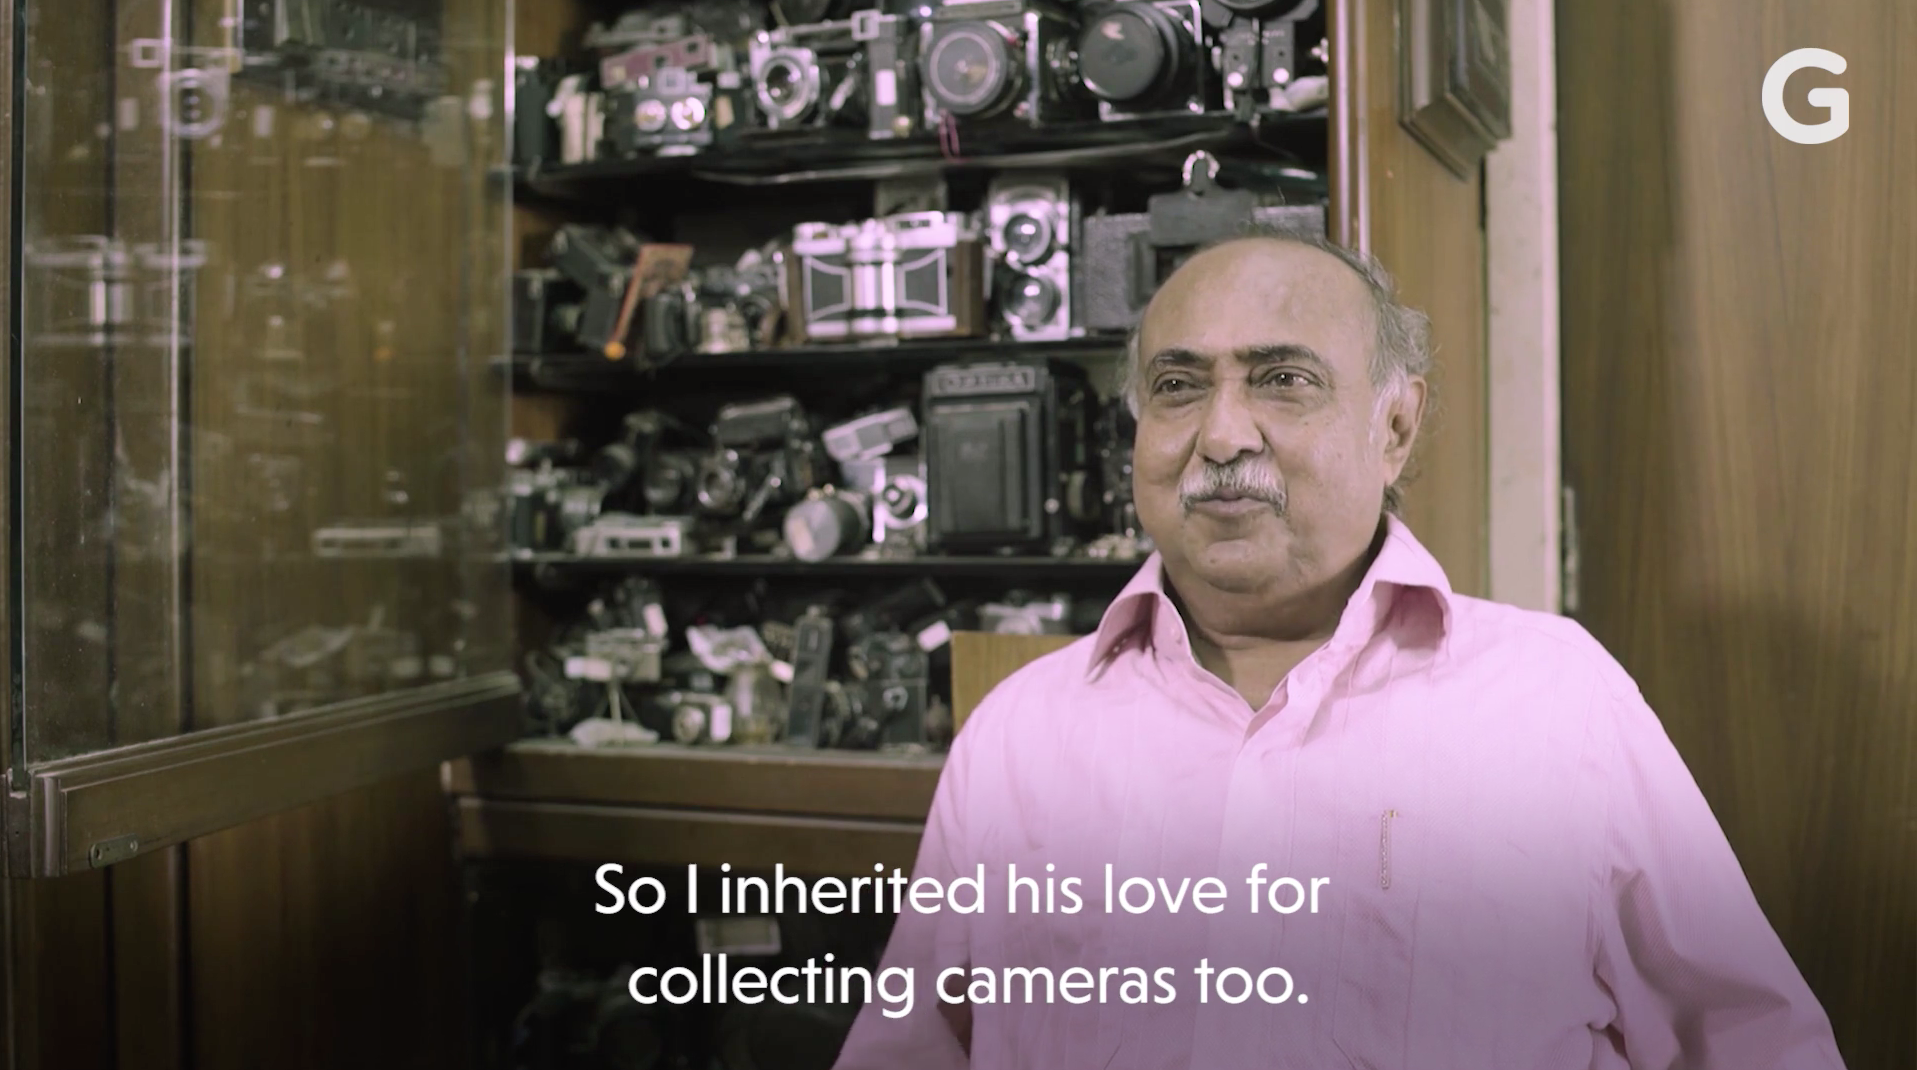 Dilish Parekh of Mumbai, India, speaks to Gizmodo about his collection of cameras.